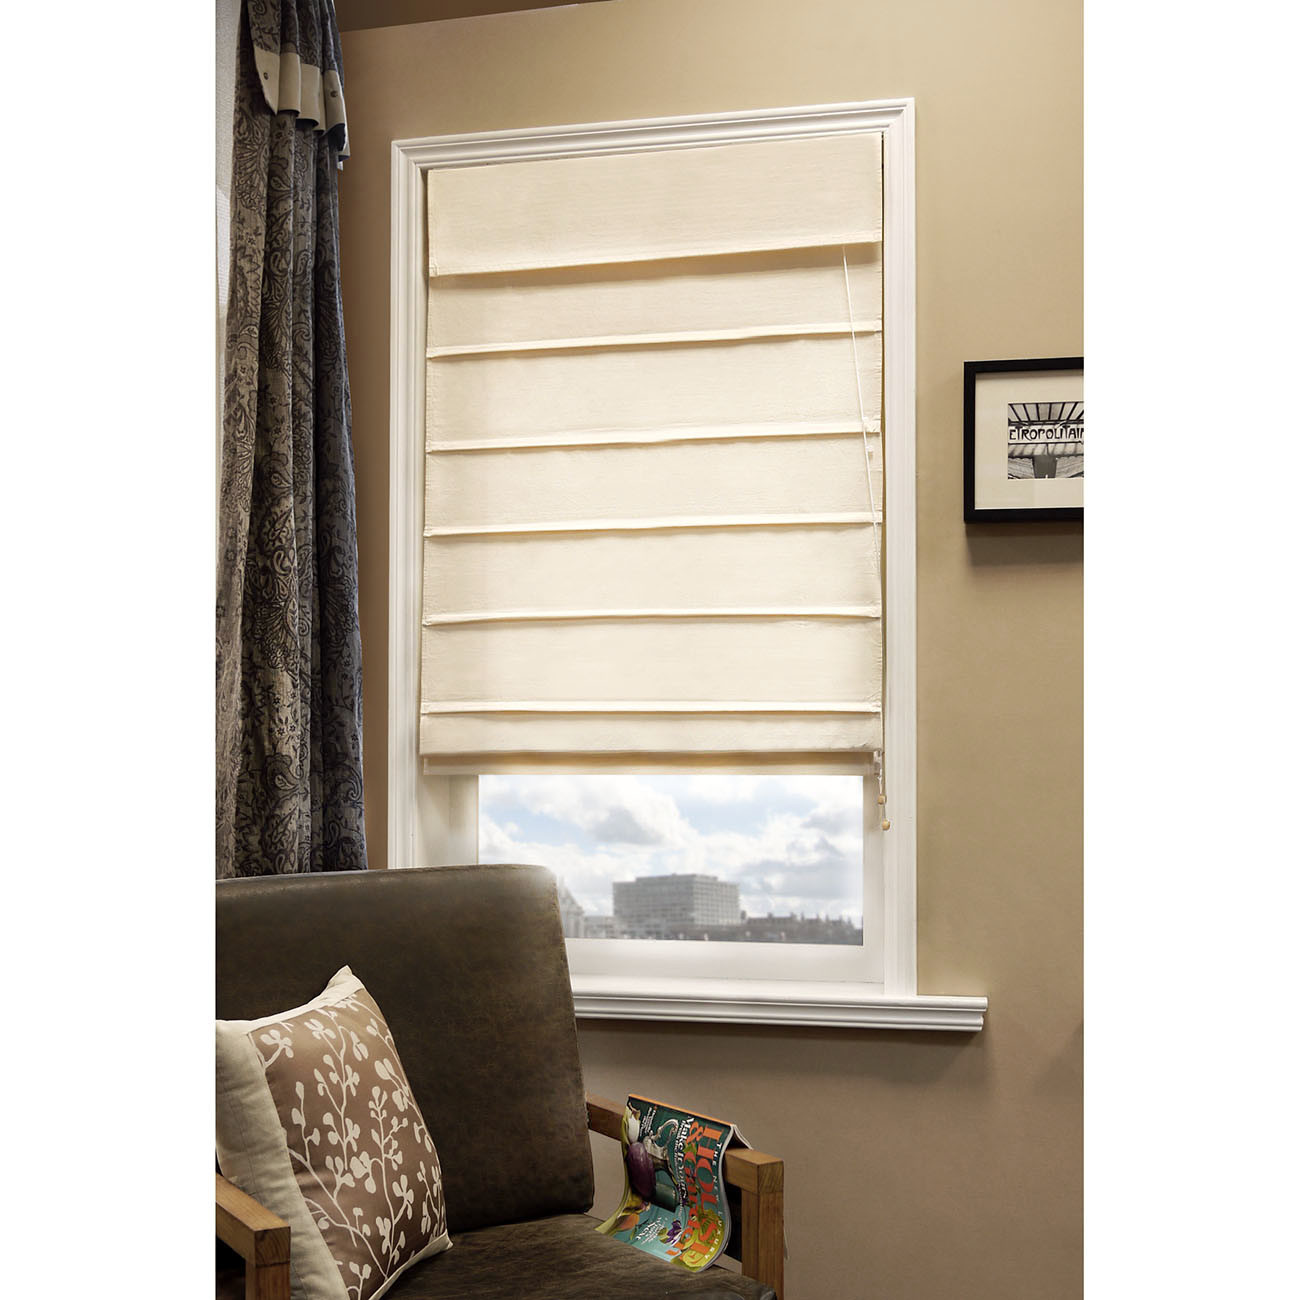 Menards Quincy Il Menards Window Blinds Menards Vertical Window Blinds